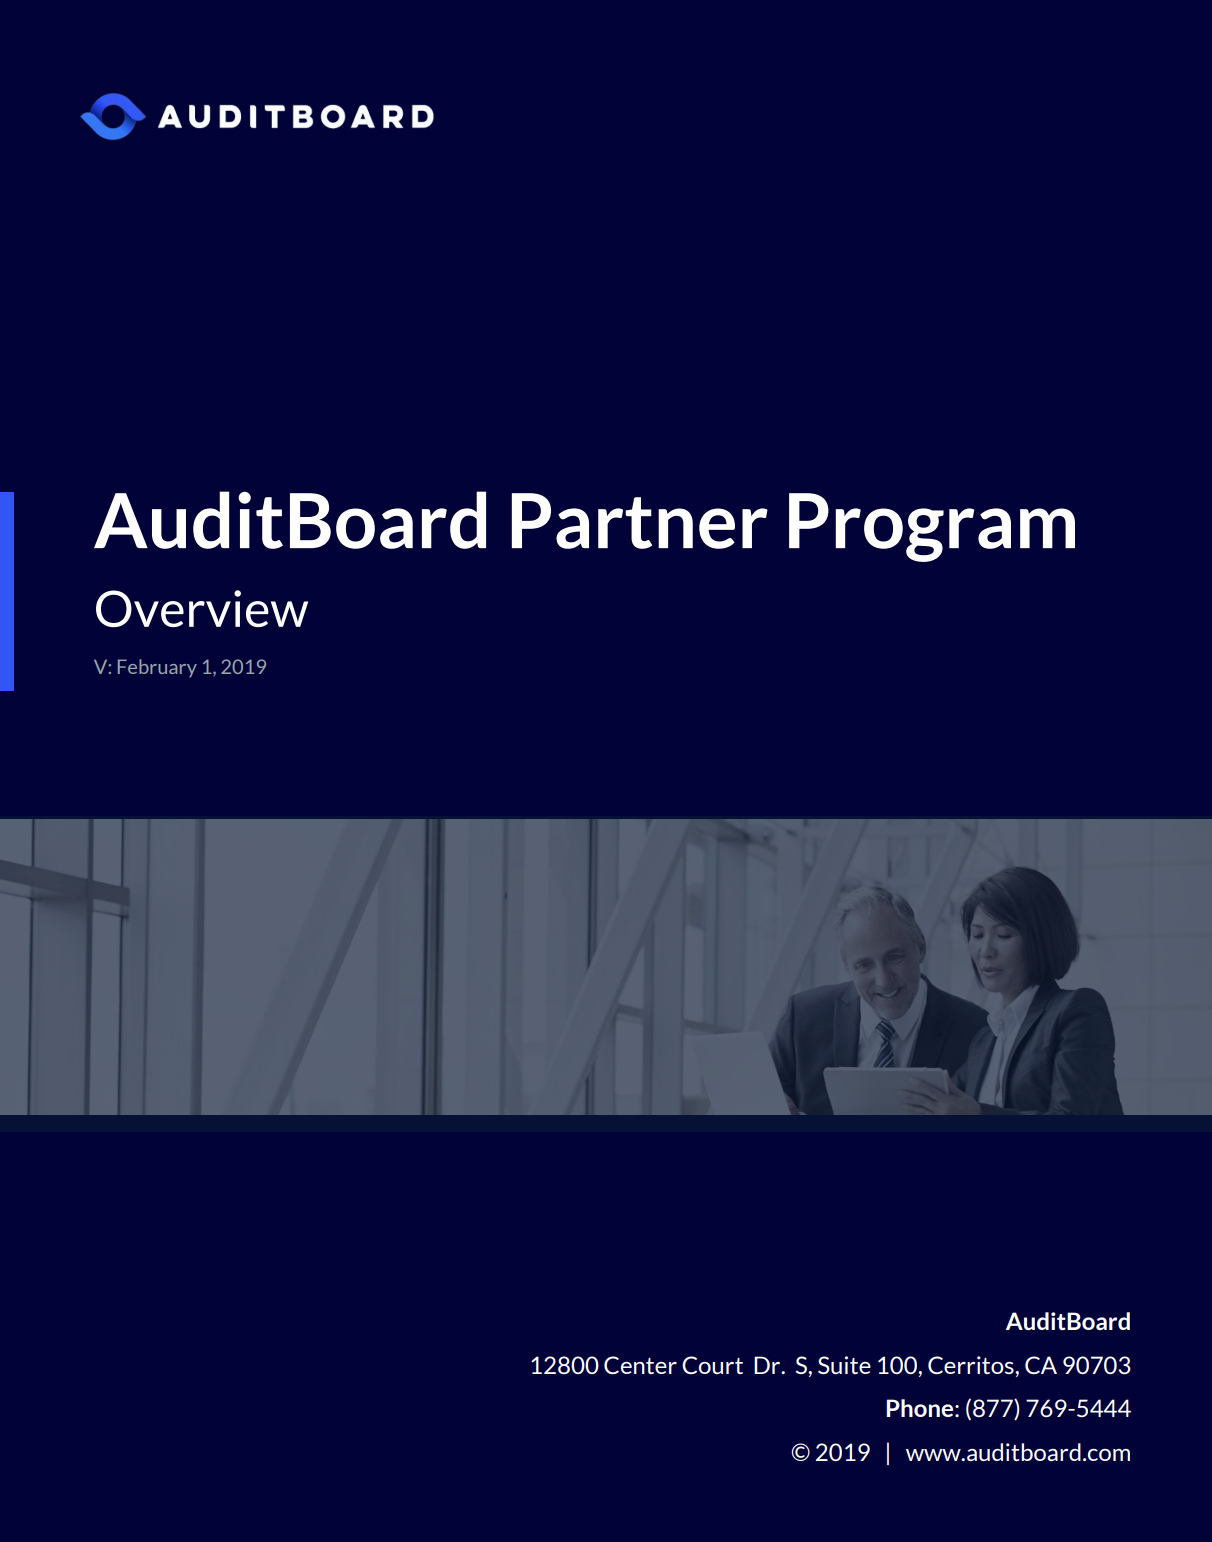 AuditBoard Partner Program